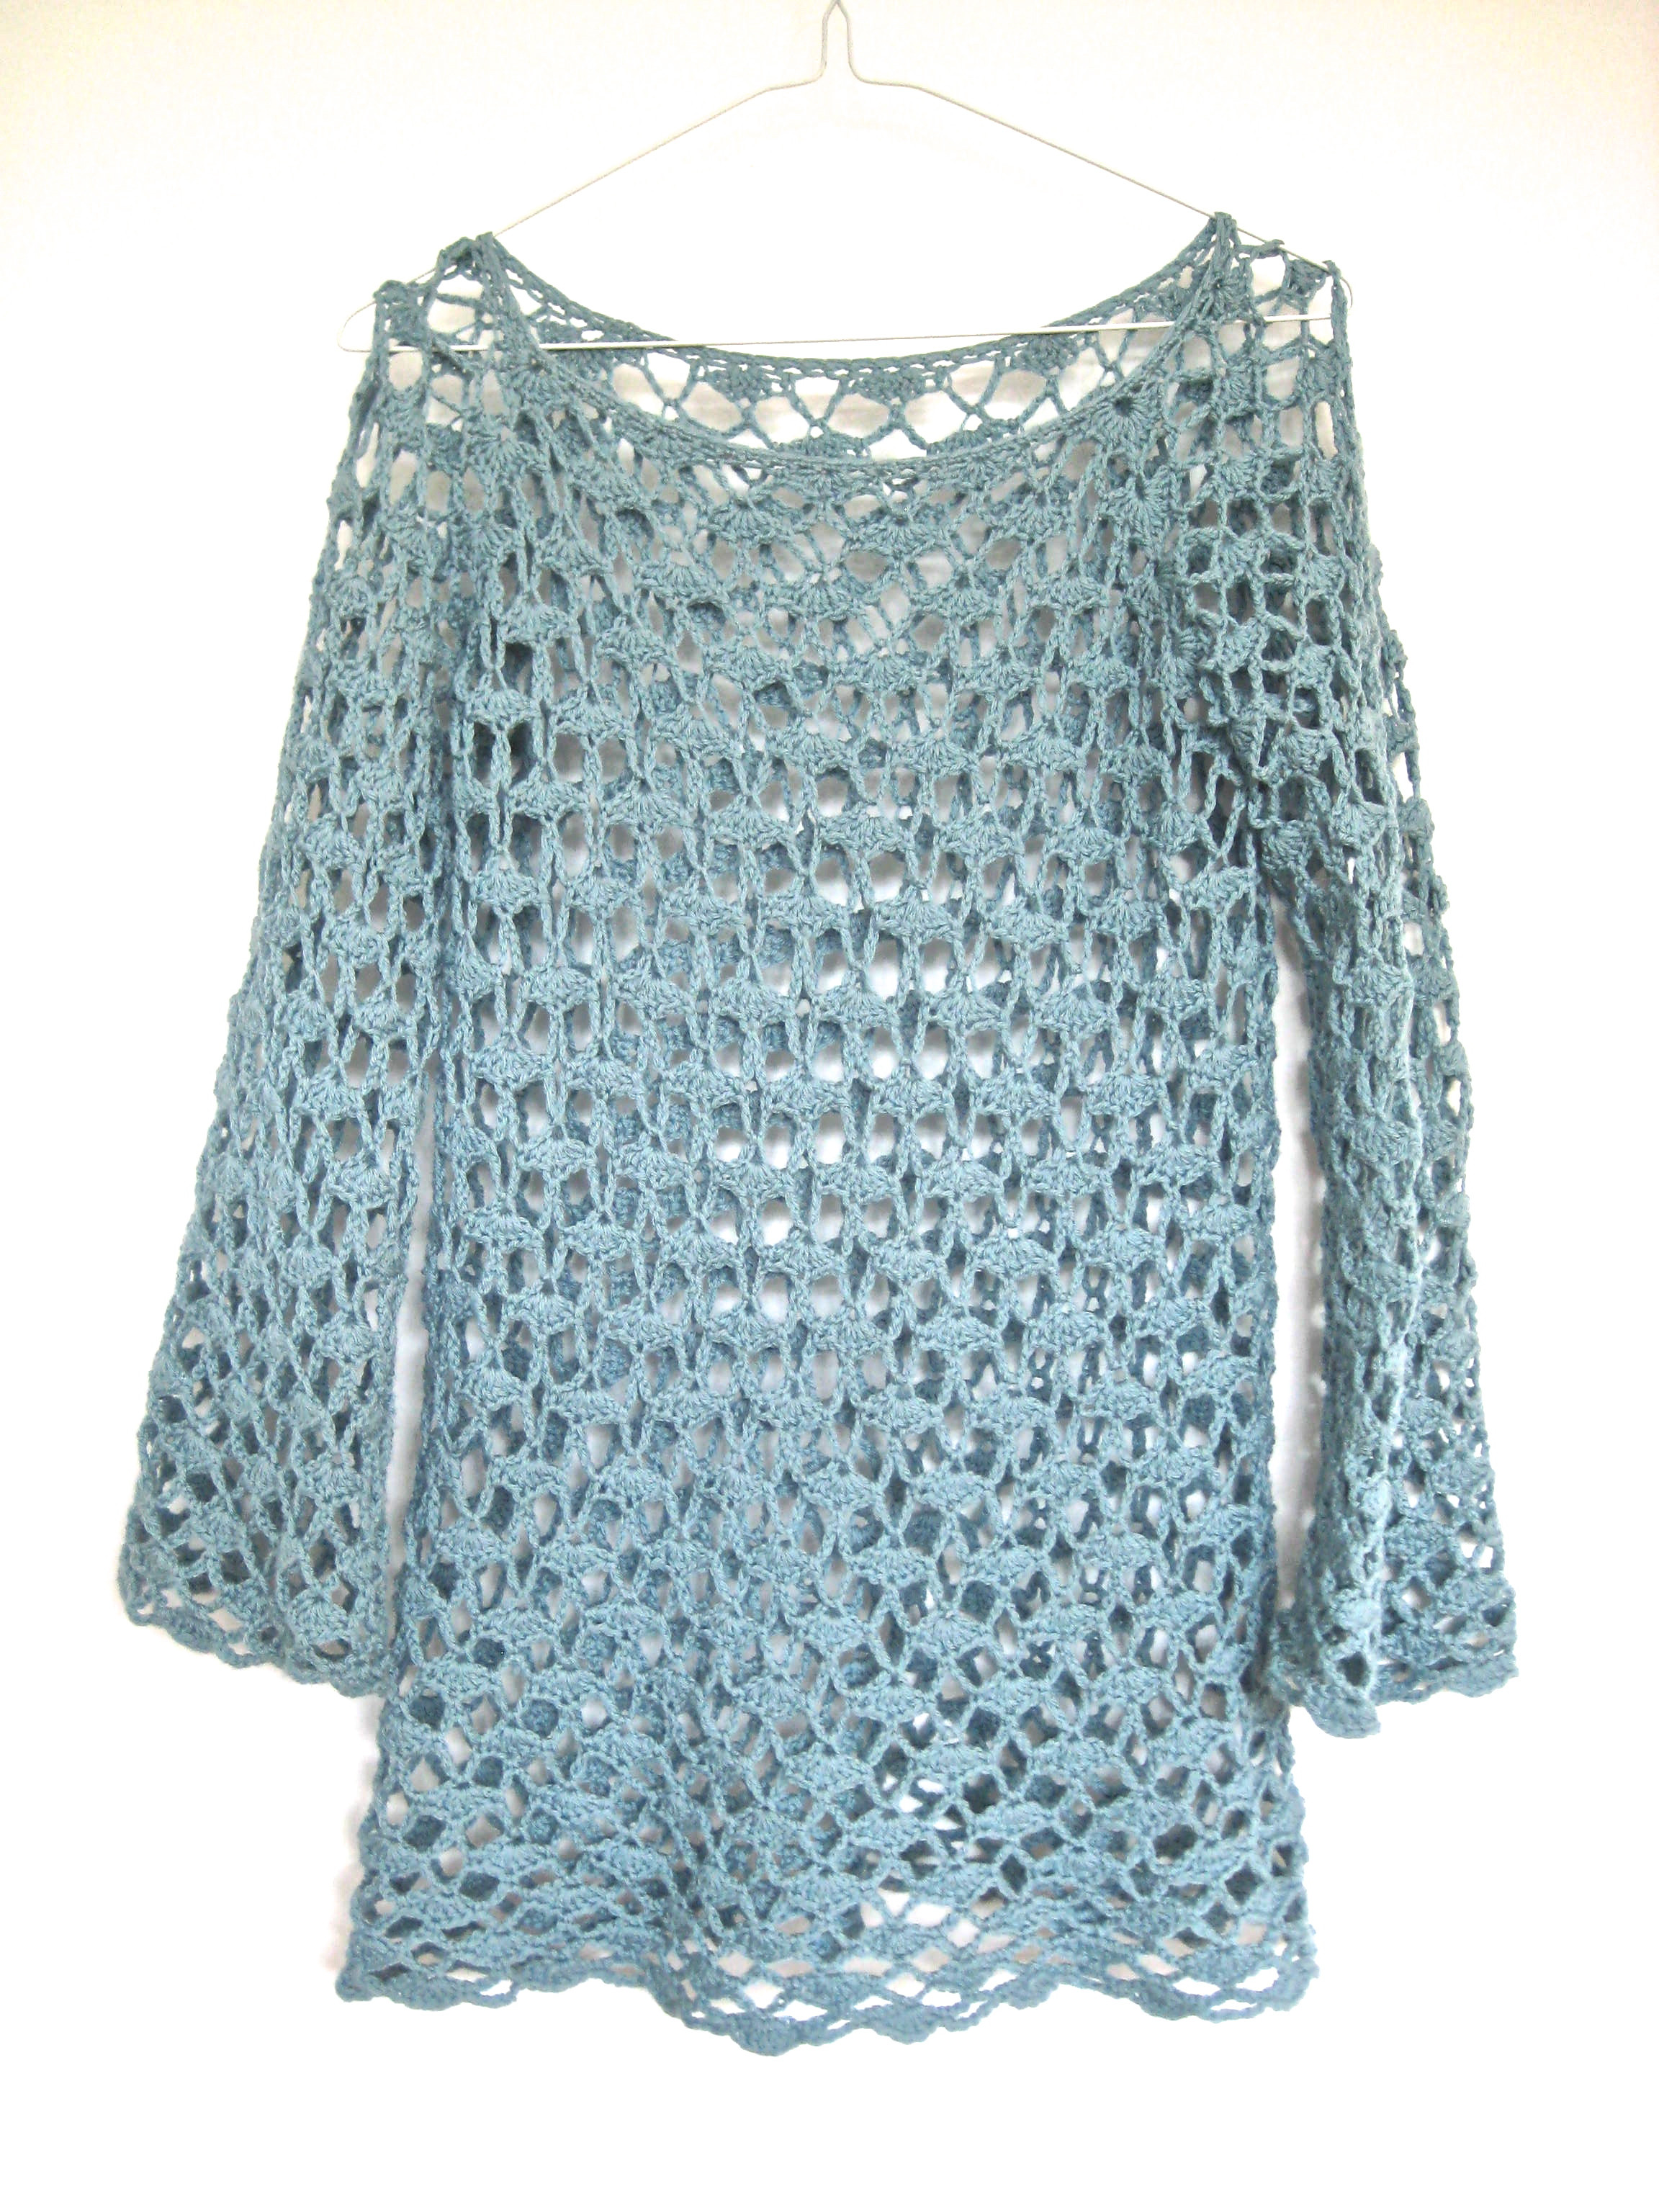 Awesome Crochet Lace Summer top Pattern Crochet Lace top Pattern Of Incredible 45 Models Crochet Lace top Pattern